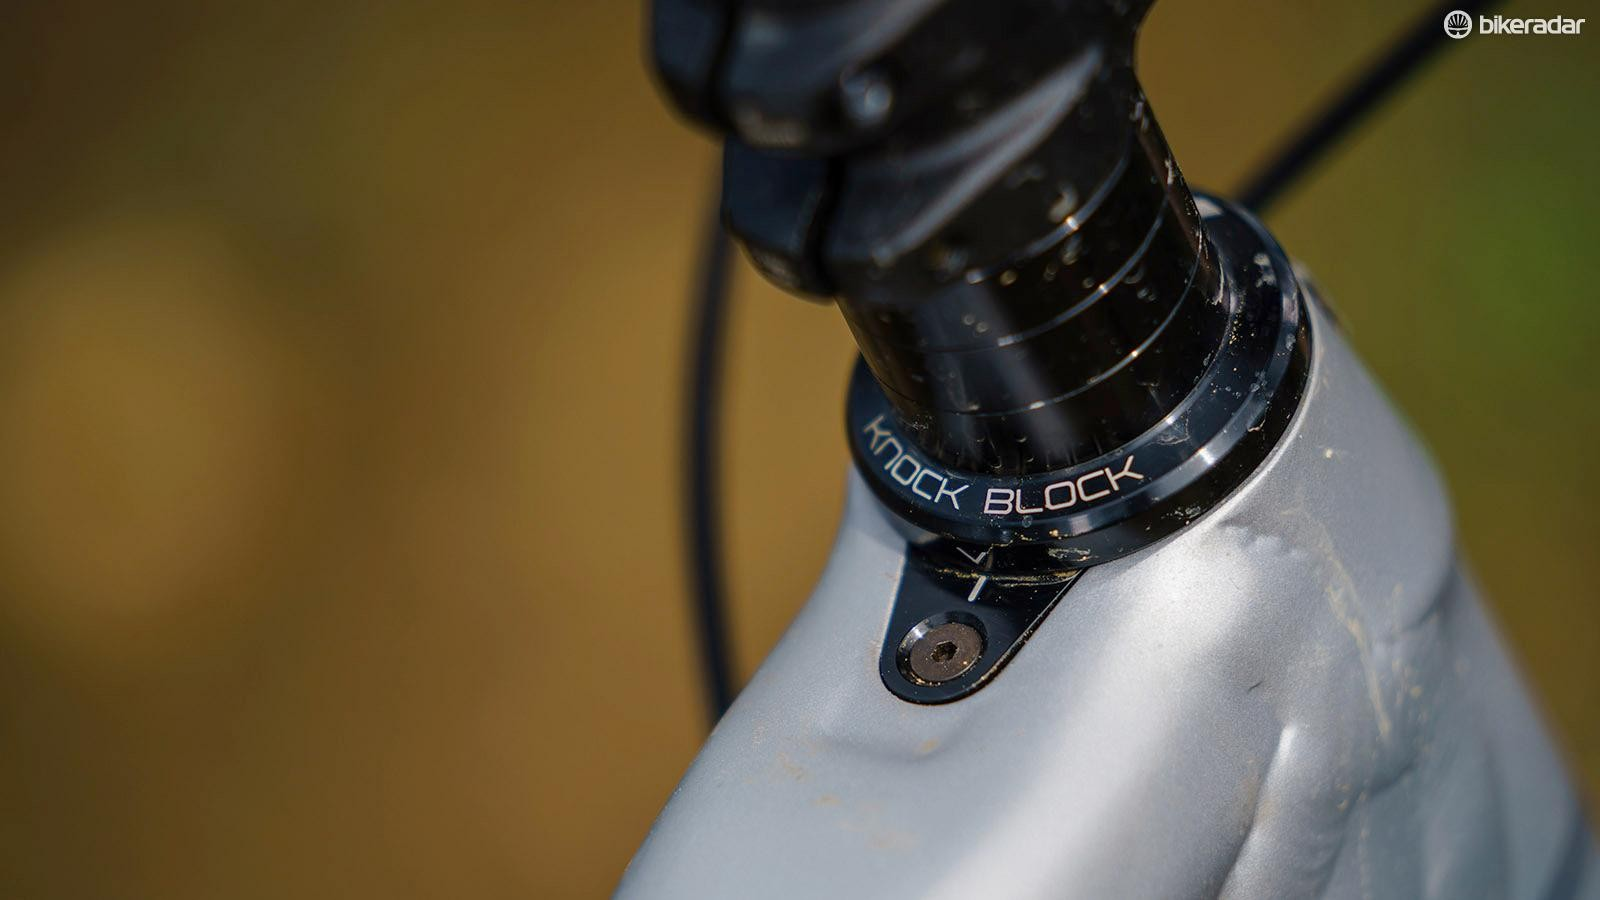 Trek's Knock Block prevents frame damage from over-rotated bars, but makes bike storage a bit of a pain